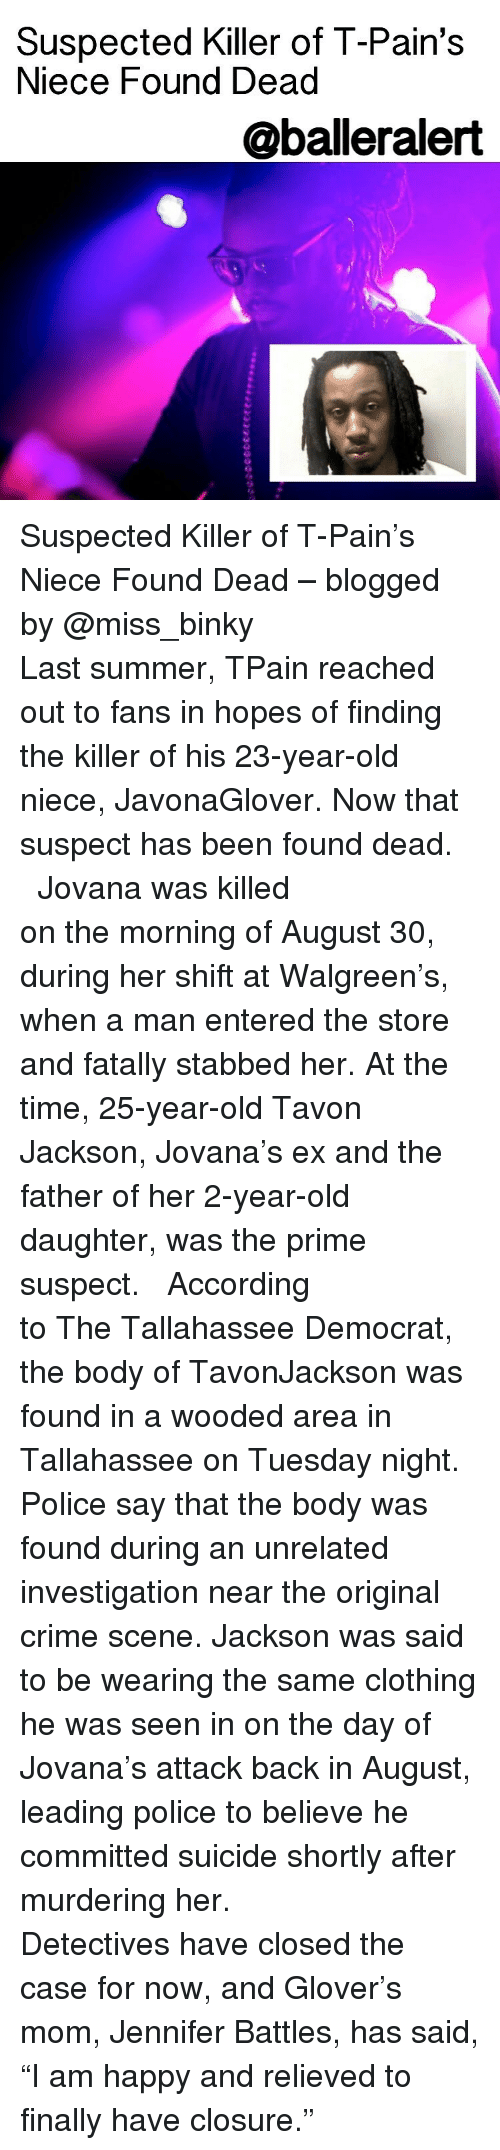 "Memes, T-Pain, and Walgreens: Suspected Killer of T-Pain's  Niece Found Dead  @balleralert Suspected Killer of T-Pain's Niece Found Dead – blogged by @miss_binky ⠀⠀⠀⠀⠀⠀⠀⠀⠀ ⠀⠀⠀⠀⠀⠀⠀⠀⠀ Last summer, TPain reached out to fans in hopes of finding the killer of his 23-year-old niece, JavonaGlover. Now that suspect has been found dead. ⠀⠀⠀⠀⠀⠀⠀⠀⠀ ⠀⠀⠀⠀⠀⠀⠀⠀⠀ Jovana was killed on the morning of August 30, during her shift at Walgreen's, when a man entered the store and fatally stabbed her. At the time, 25-year-old Tavon Jackson, Jovana's ex and the father of her 2-year-old daughter, was the prime suspect. ⠀⠀⠀⠀⠀⠀⠀⠀⠀ ⠀⠀⠀⠀⠀⠀⠀⠀⠀ According to The Tallahassee Democrat, the body of TavonJackson was found in a wooded area in Tallahassee on Tuesday night. Police say that the body was found during an unrelated investigation near the original crime scene. Jackson was said to be wearing the same clothing he was seen in on the day of Jovana's attack back in August, leading police to believe he committed suicide shortly after murdering her. ⠀⠀⠀⠀⠀⠀⠀⠀⠀ ⠀⠀⠀⠀⠀⠀⠀⠀⠀ Detectives have closed the case for now, and Glover's mom, Jennifer Battles, has said, ""I am happy and relieved to finally have closure."""